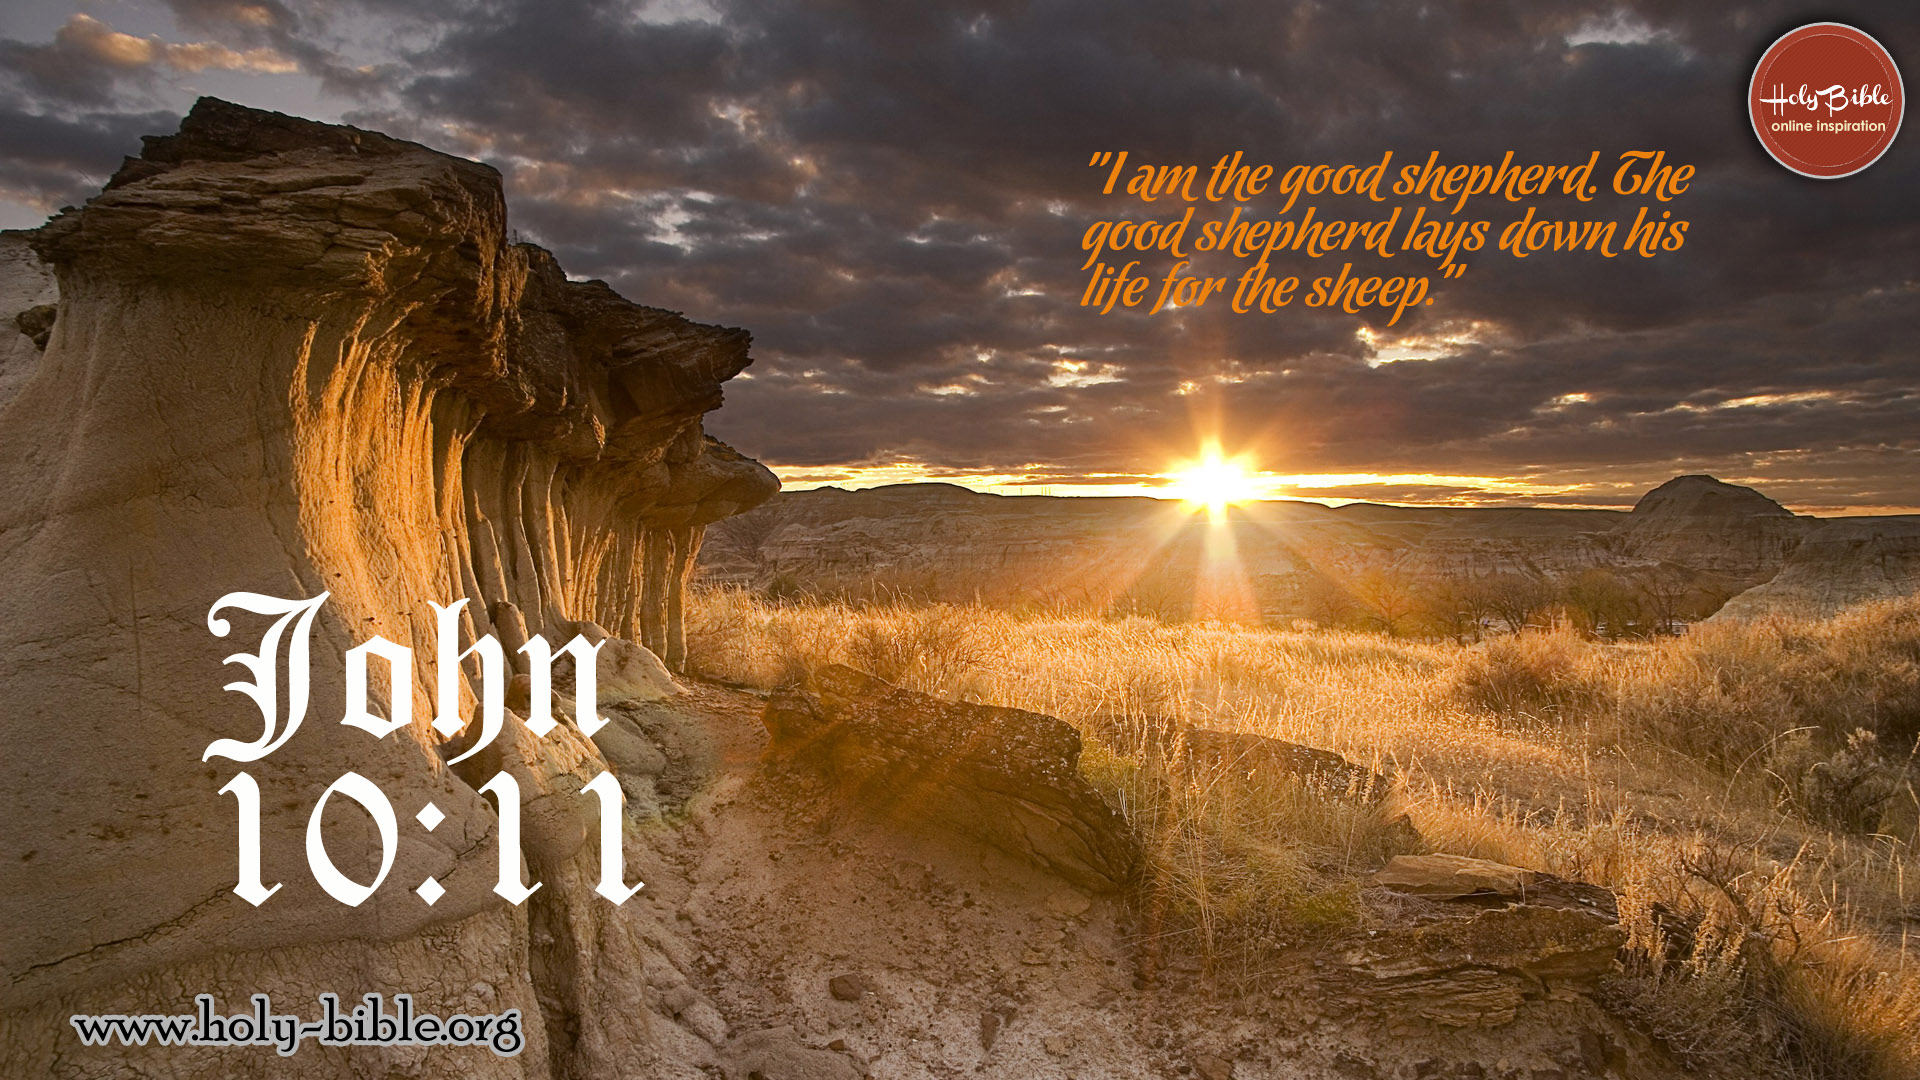 Bible Verse of the day - John 10:11